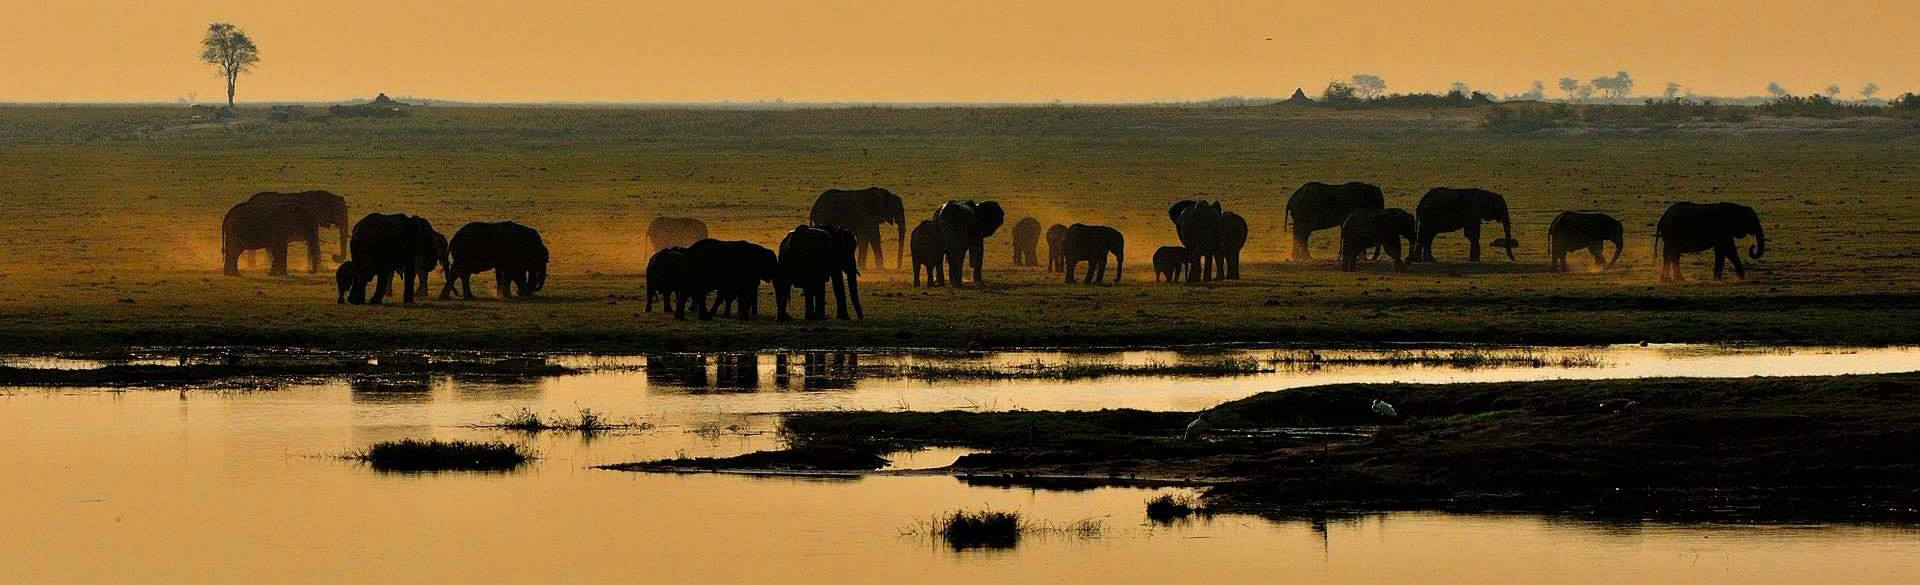 Chobe elephants courtesy Noel Smith